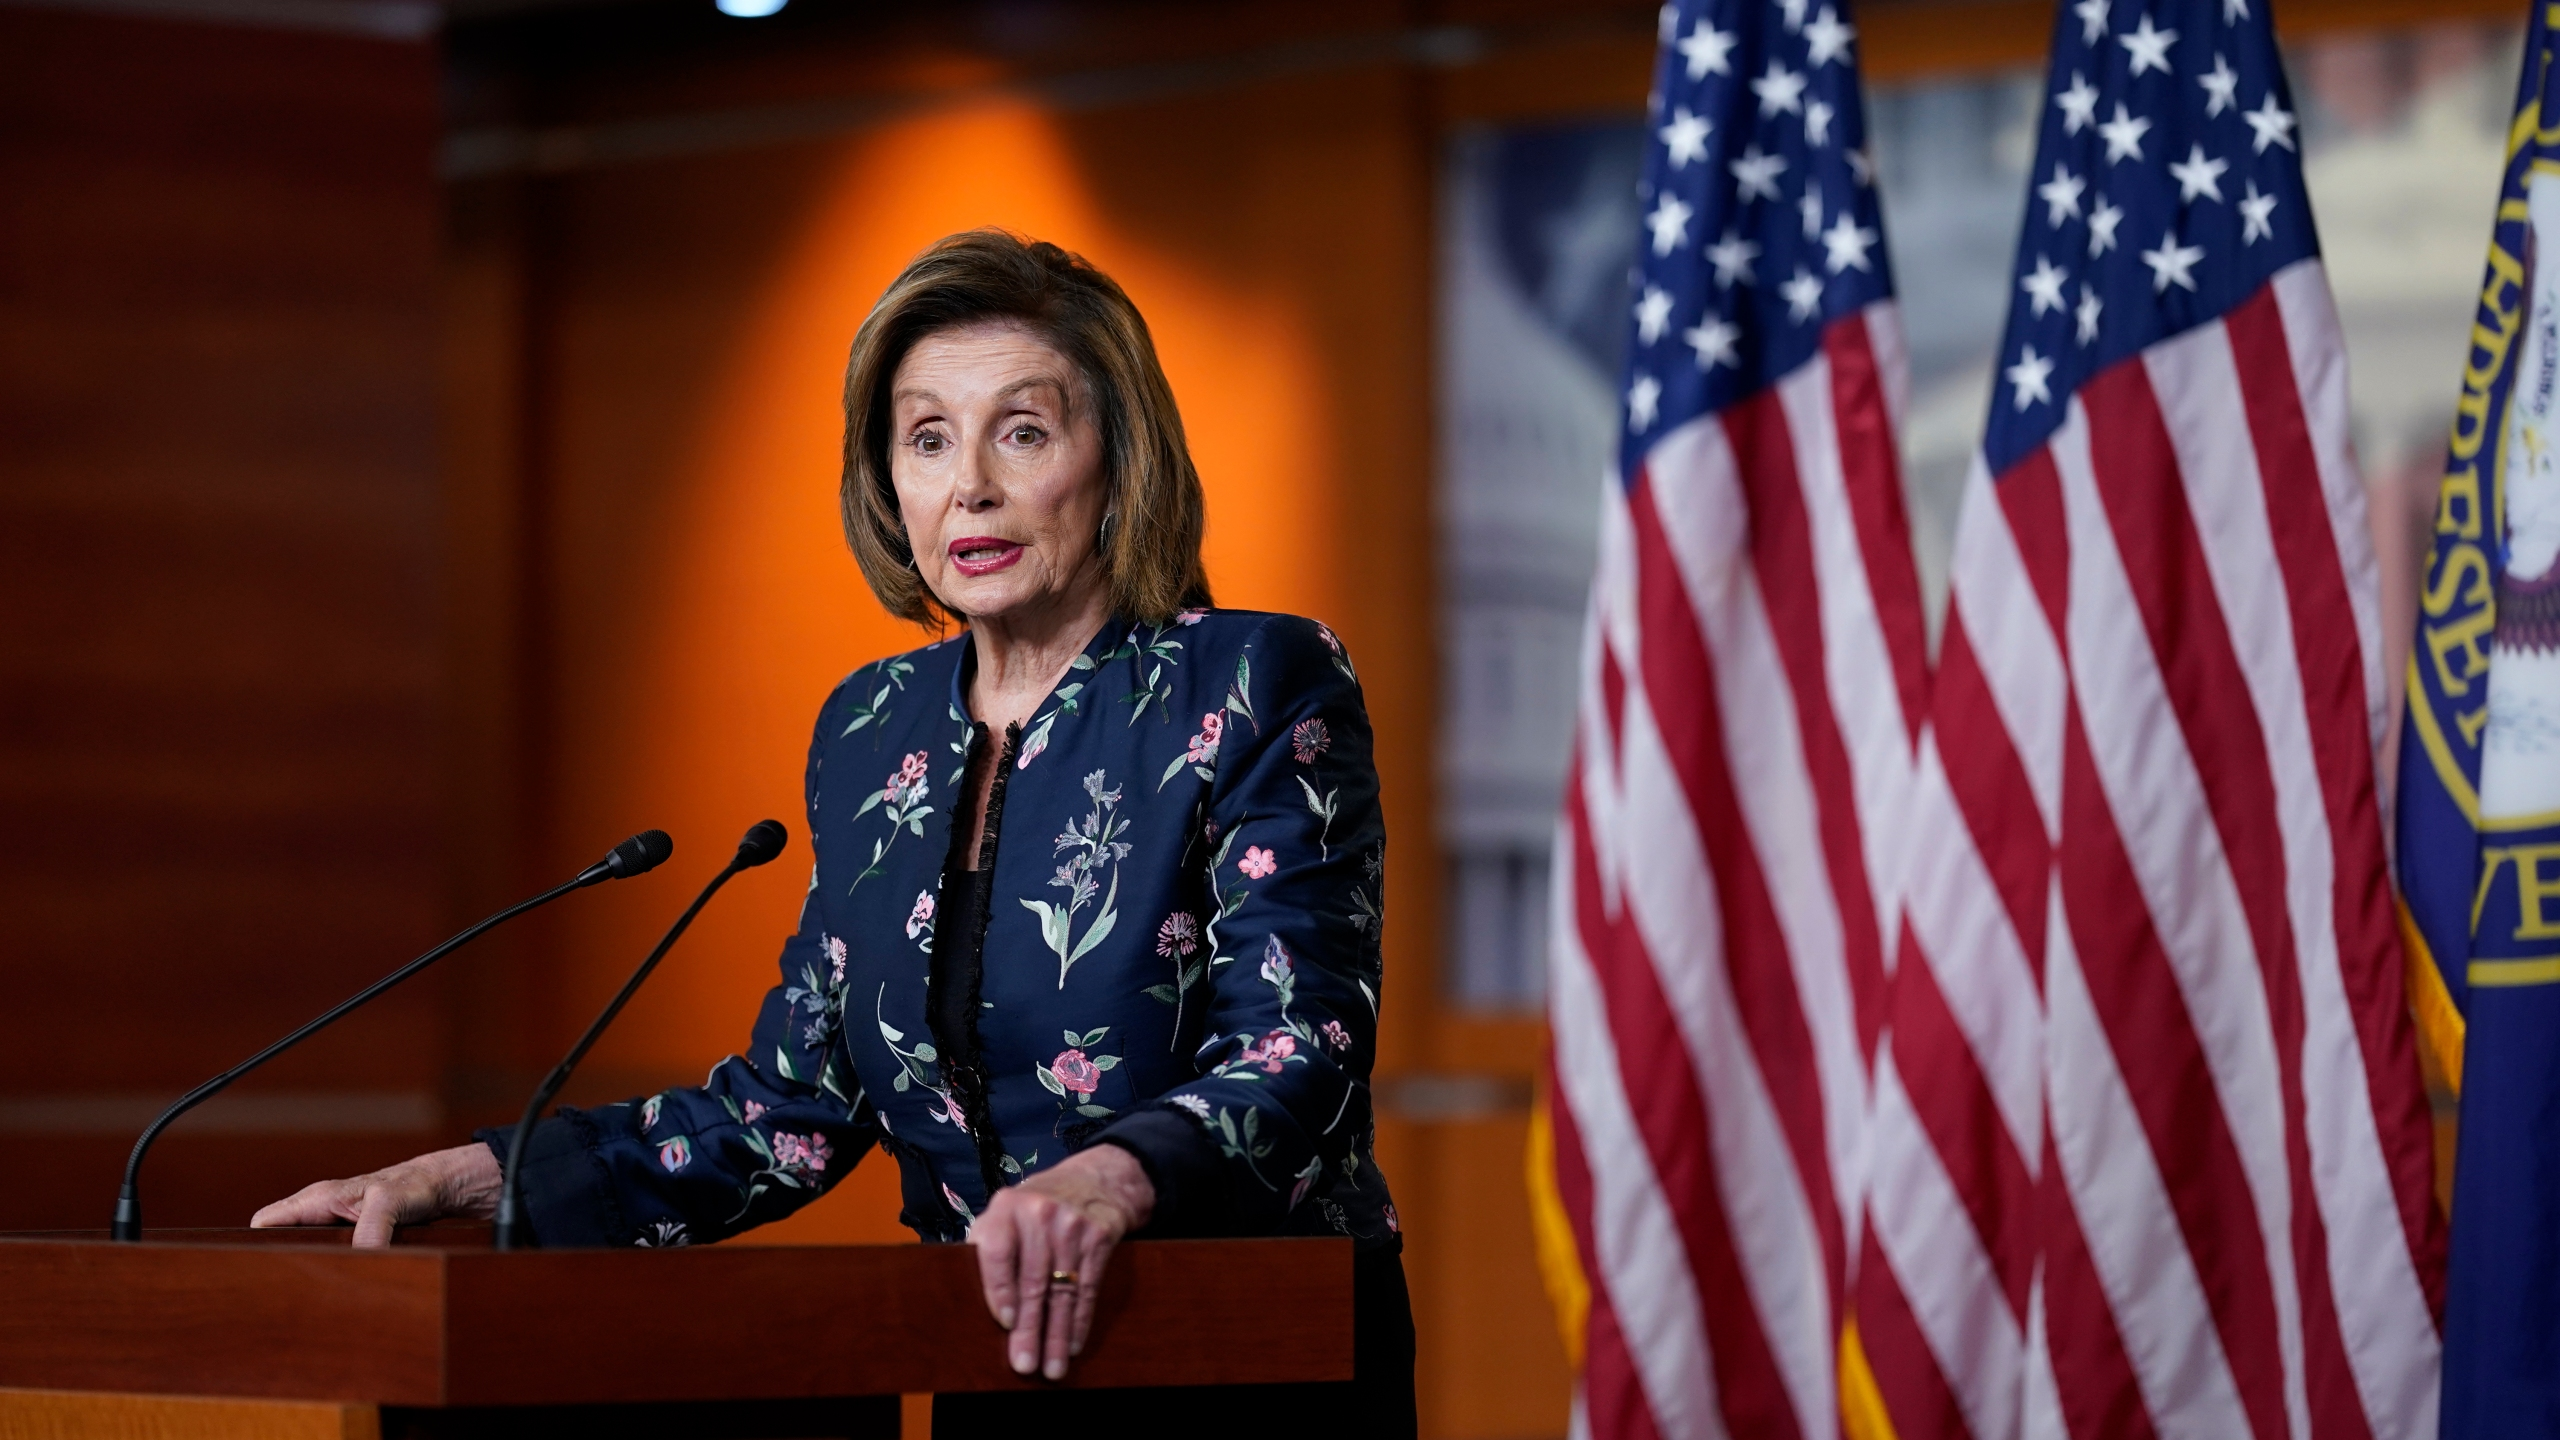 In this July 22, 2021, photo, Speaker of the House Nancy Pelosi, D-Calif., meets with reporters at the Capitol in Washington. (AP Photo/J. Scott Applewhite)